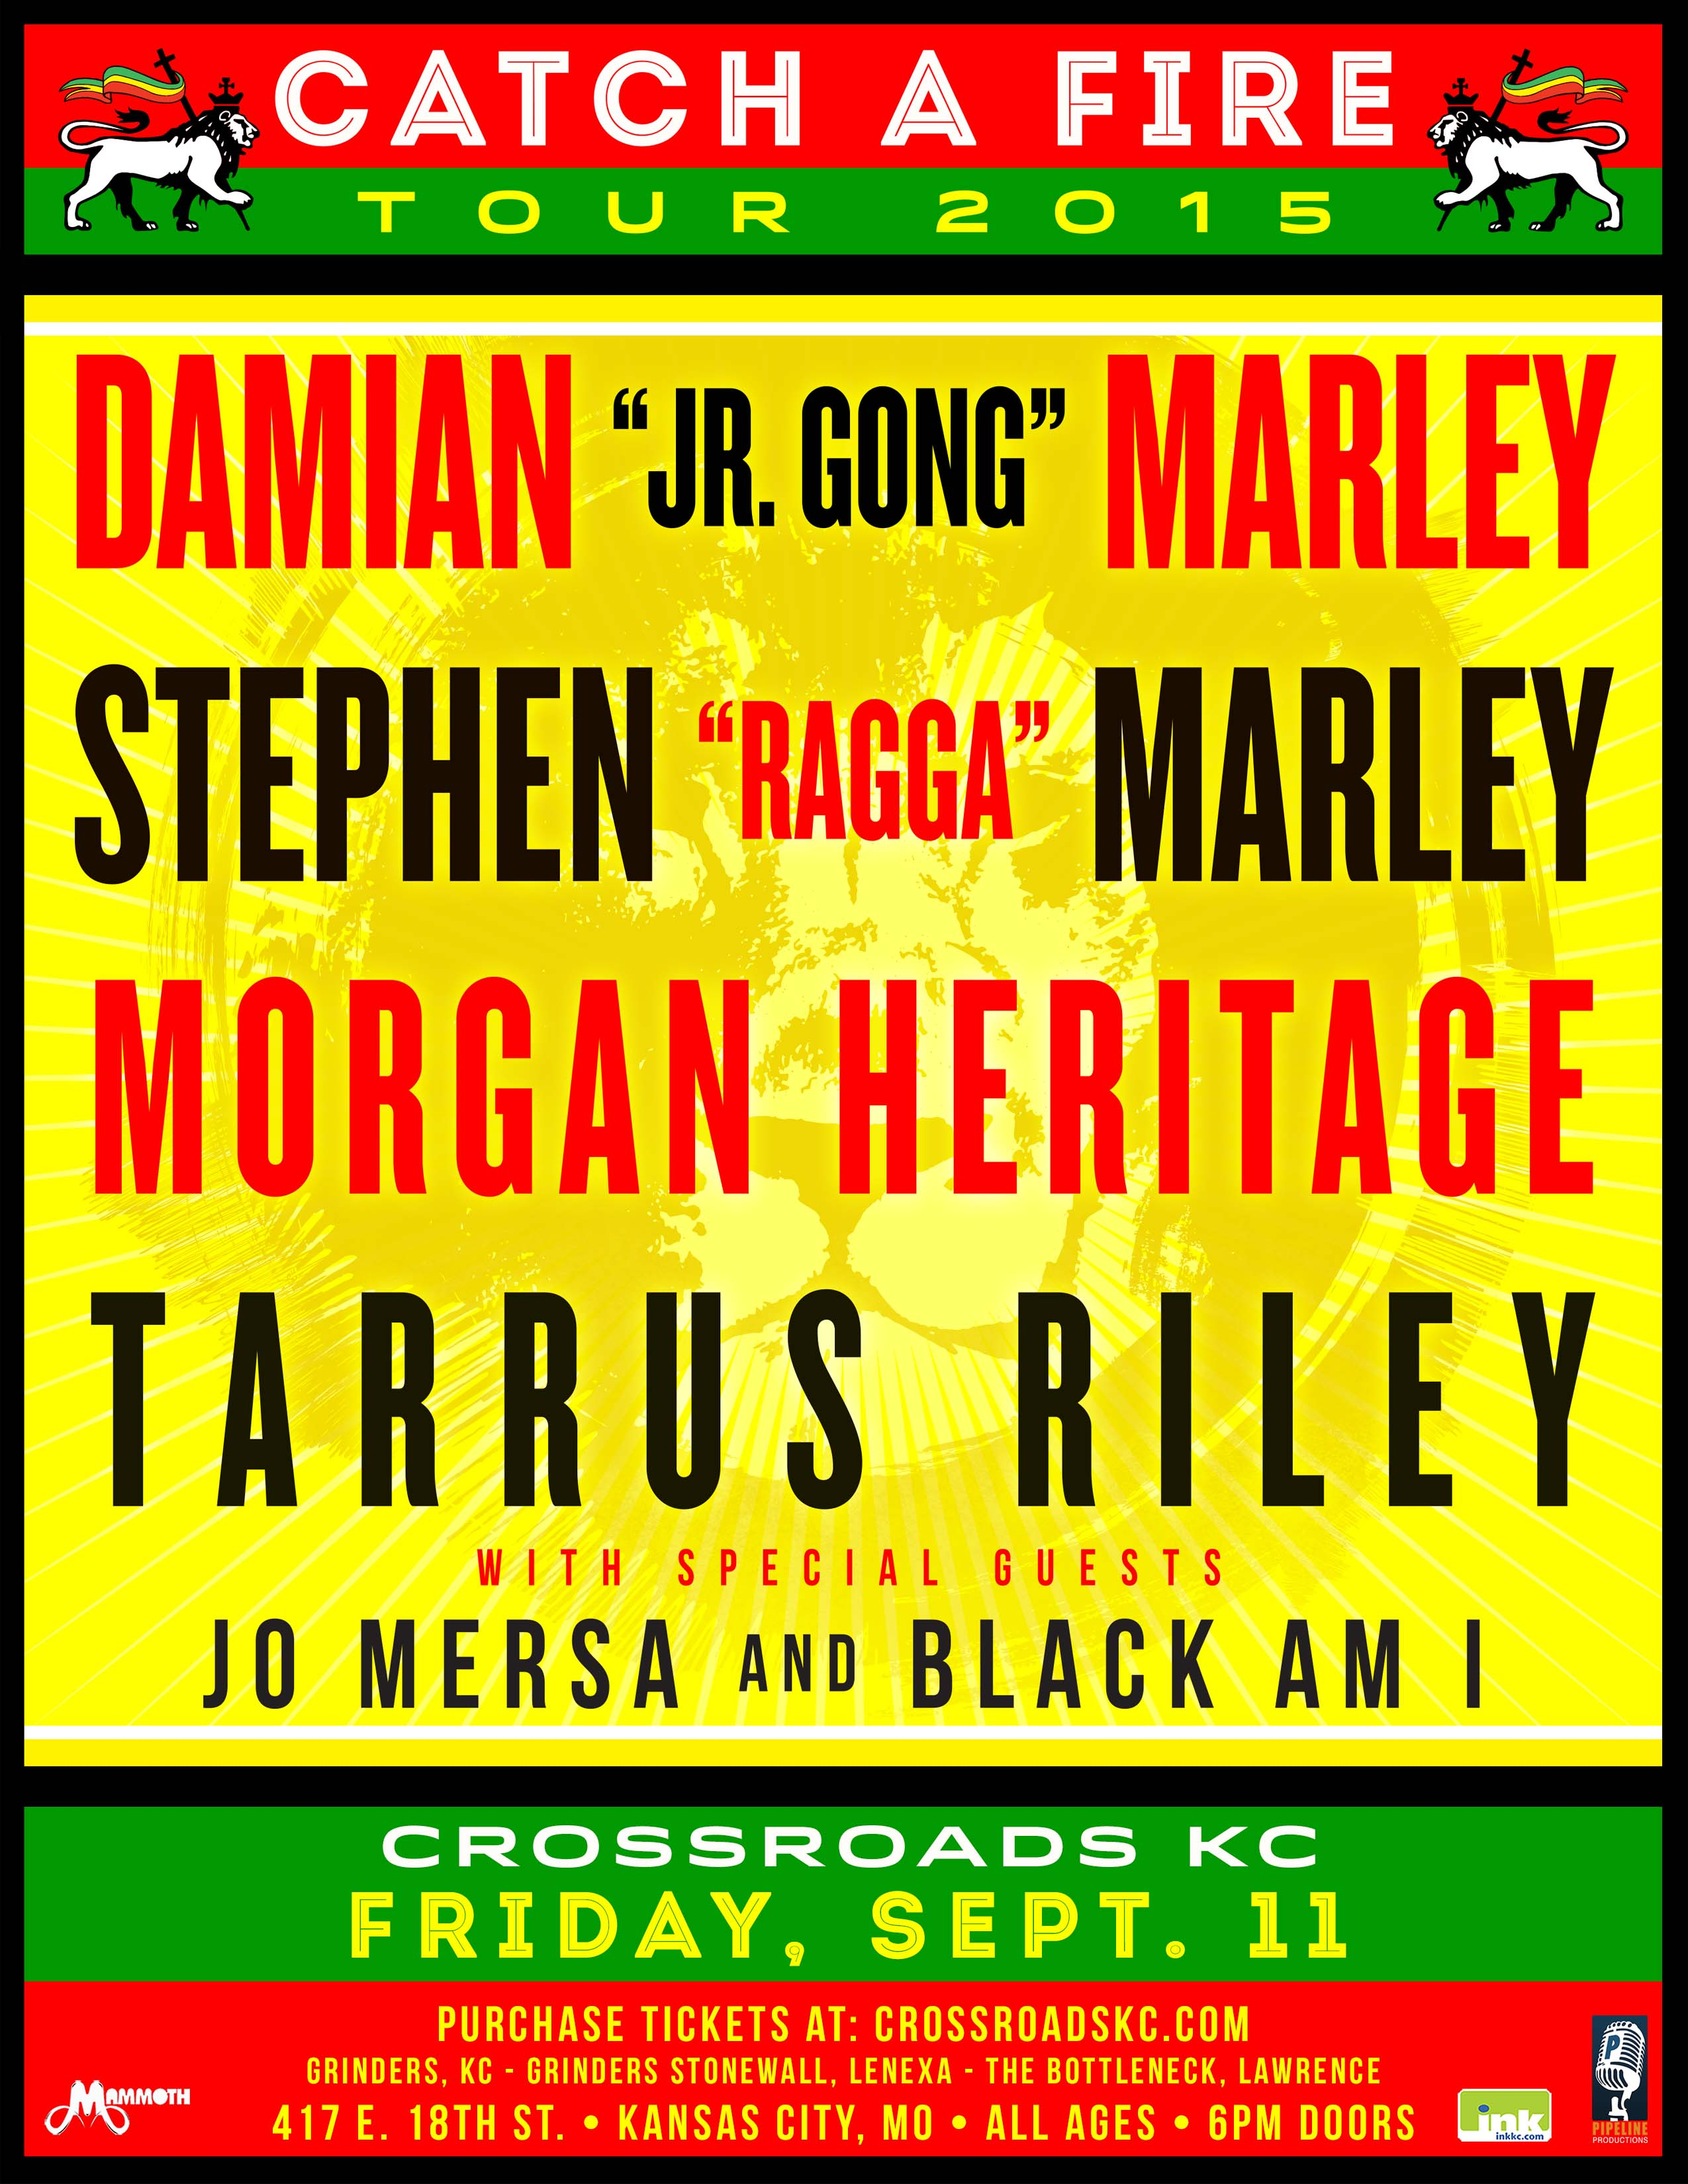 Music News: Damian Marley 'Catch a Fire' Tour will land in Las Vegas soon